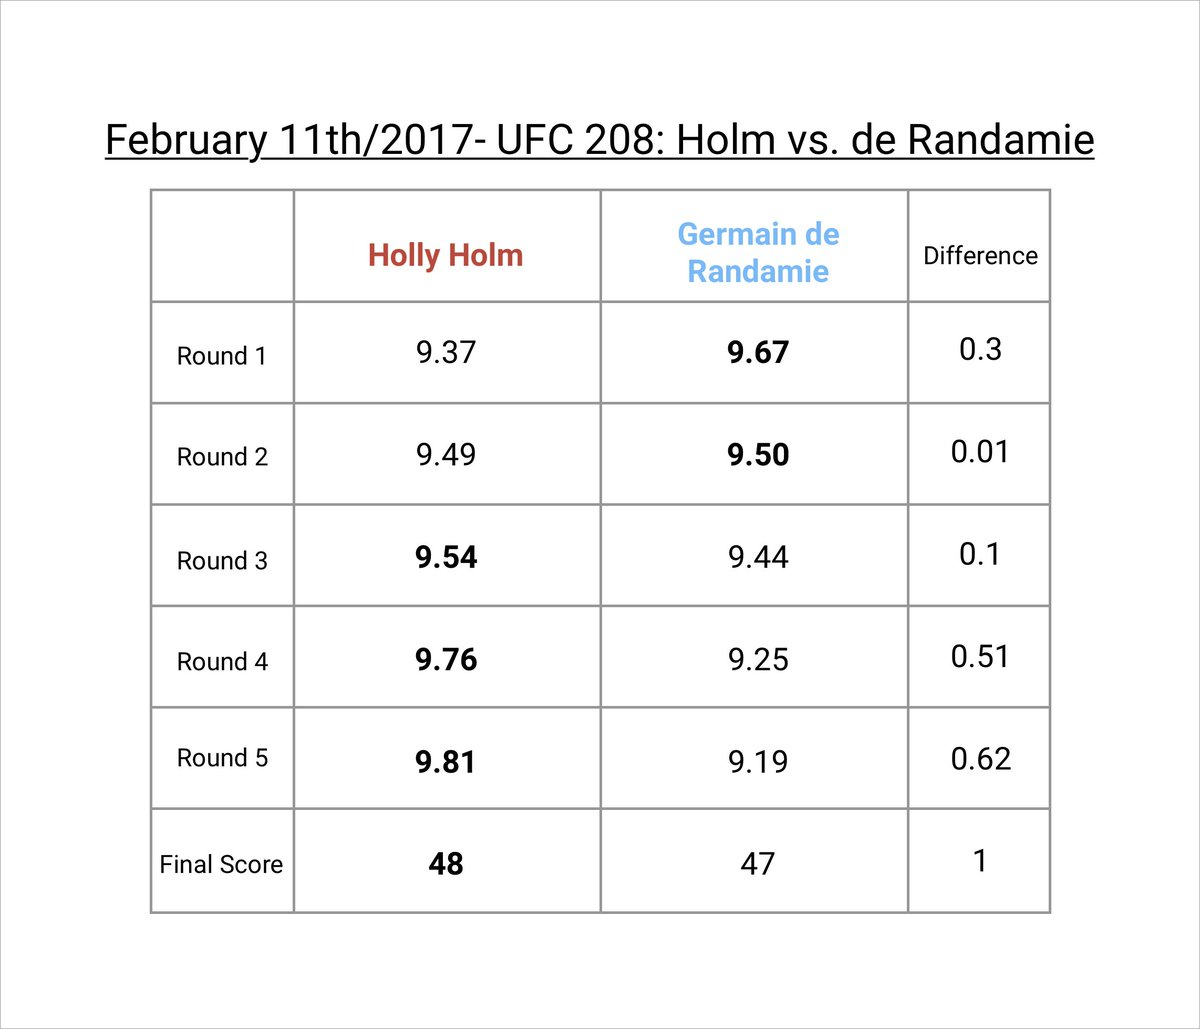 The Raw Data for Holly Holm vs. Germaine de Randamie from UFC 208. The difference in Round 2 was a 0.01.